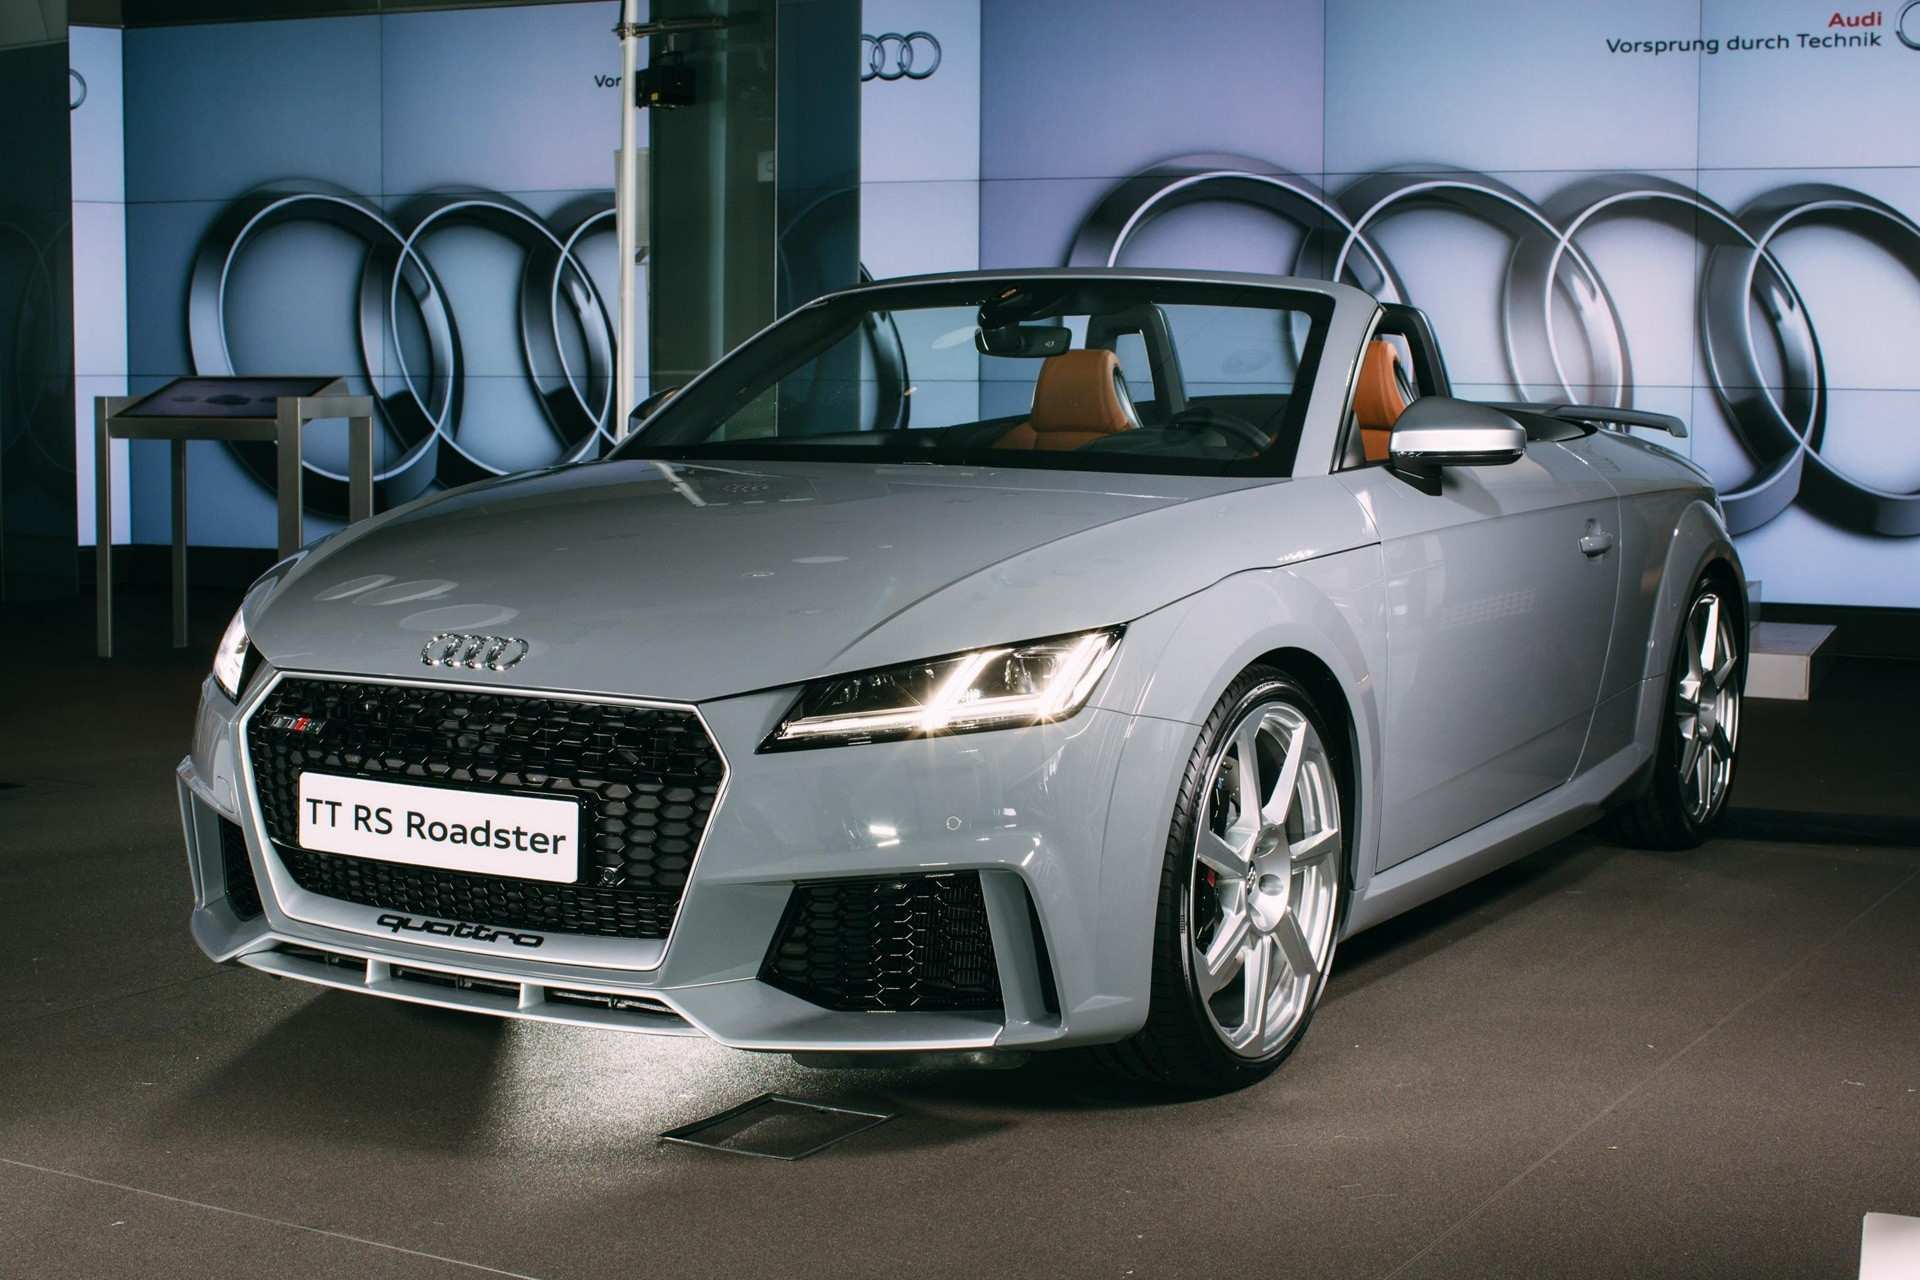 46 New The Audi Tt Convertible 2019 Concept Pricing with The Audi Tt Convertible 2019 Concept